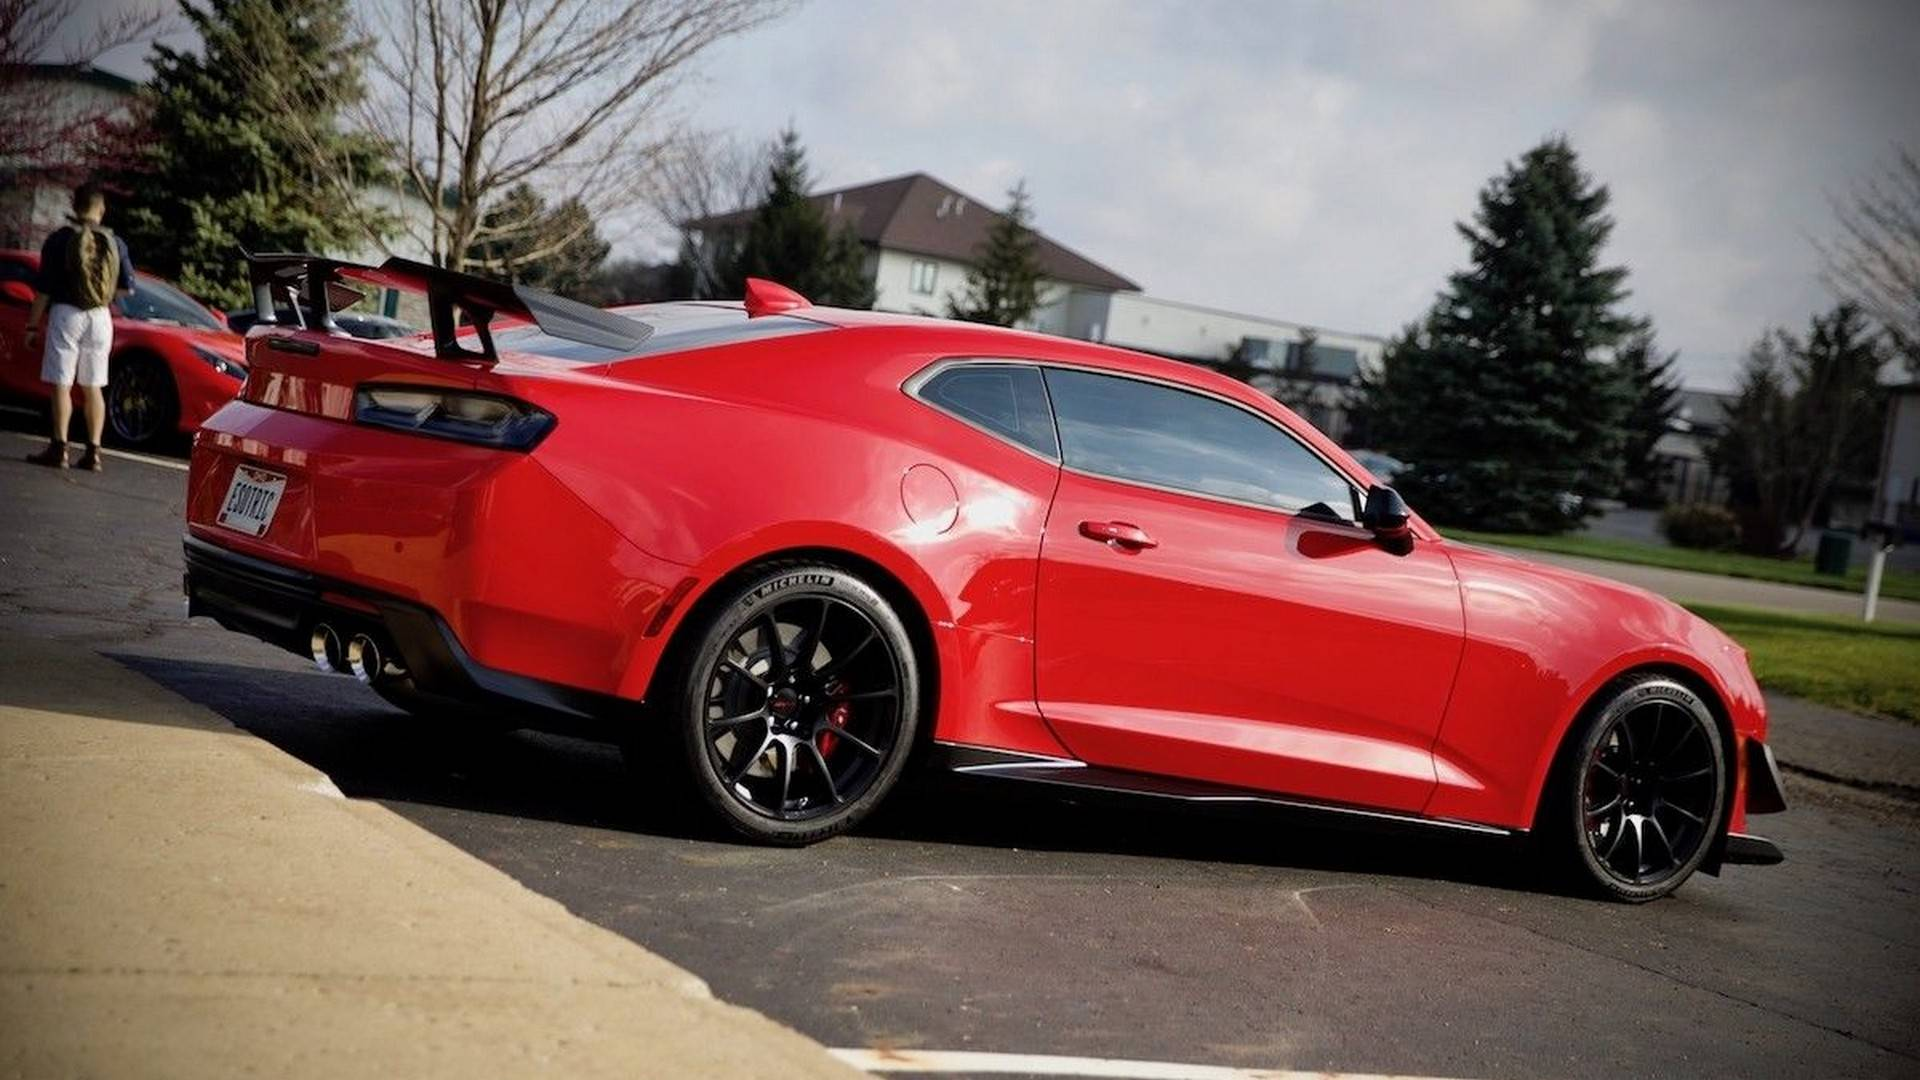 Used Camaro Zl1 For Sale >> Professional Detailer Selling Highly Upgraded Chevy Camaro